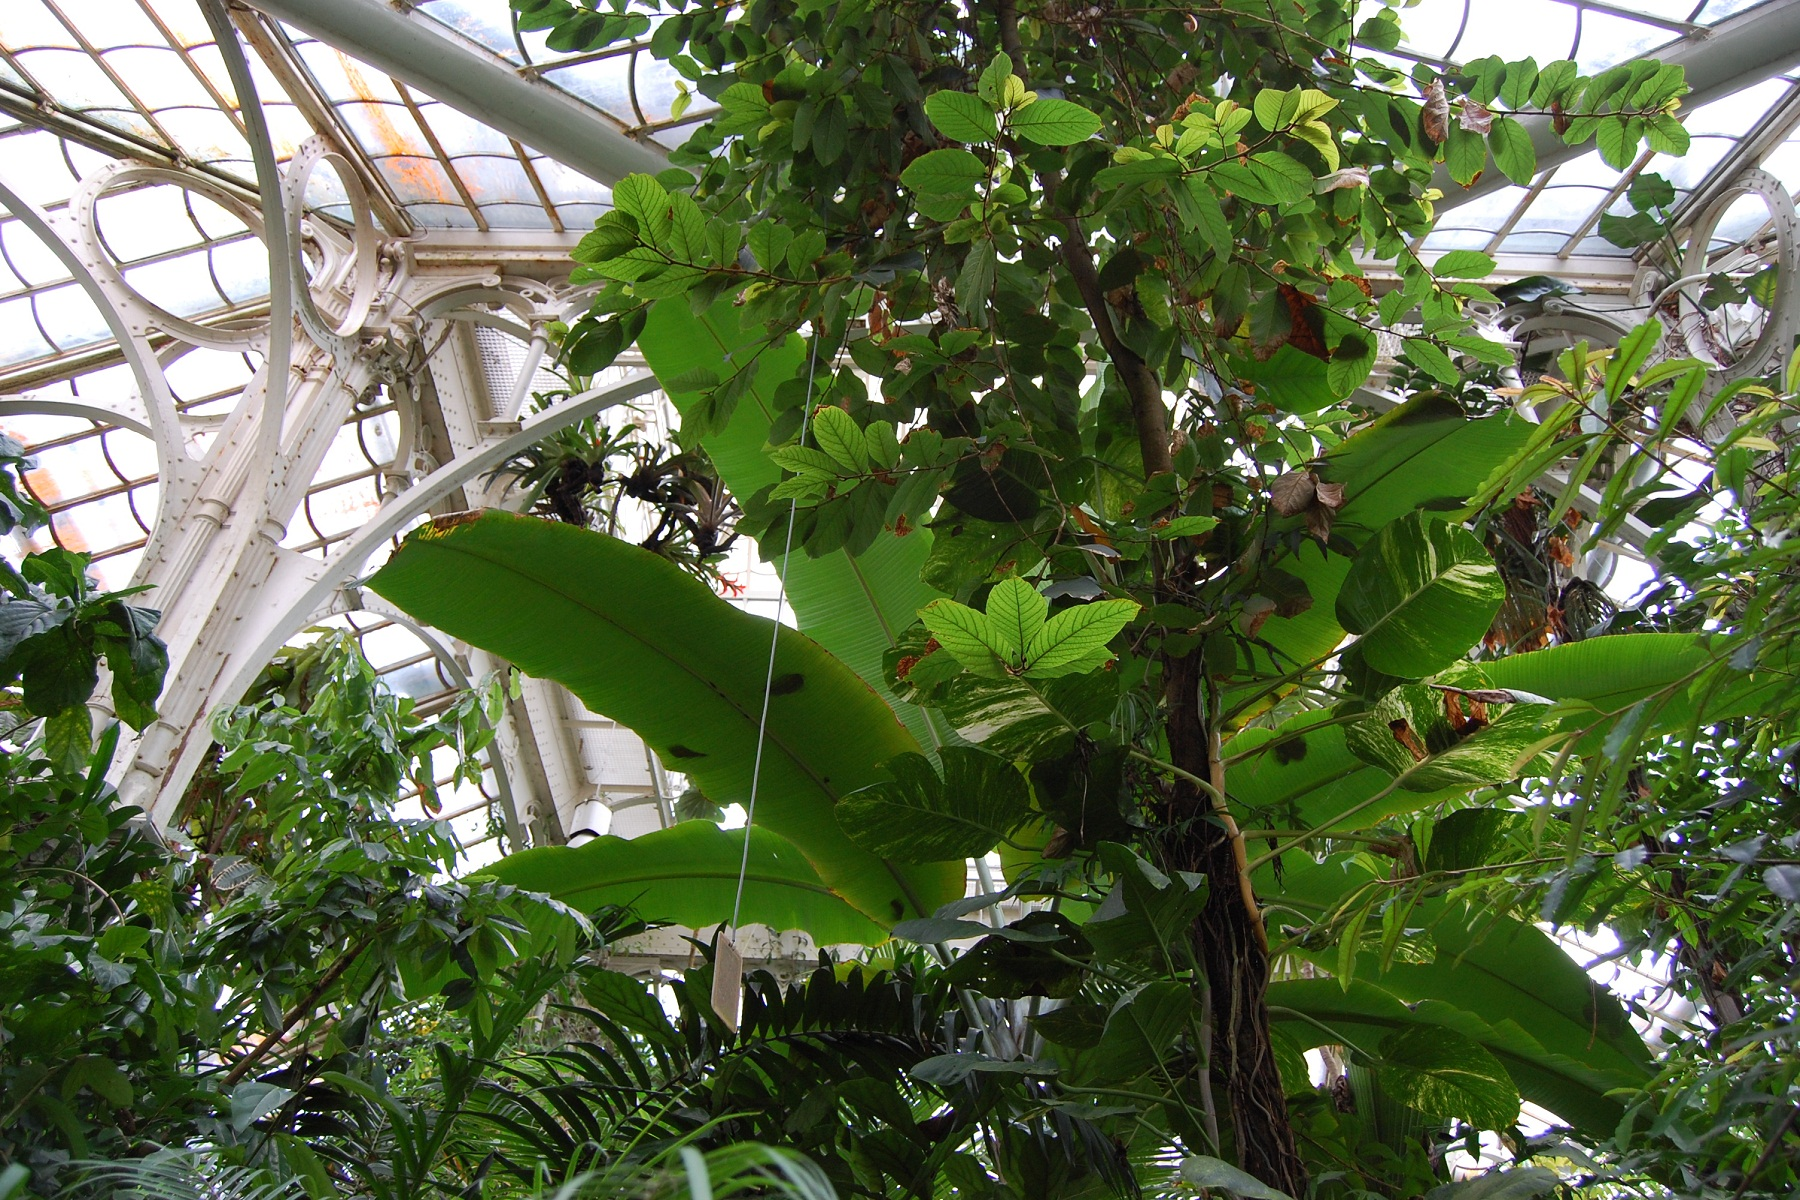 Vienna Schonbrunn Greenhouse, Austria, Veins on trees